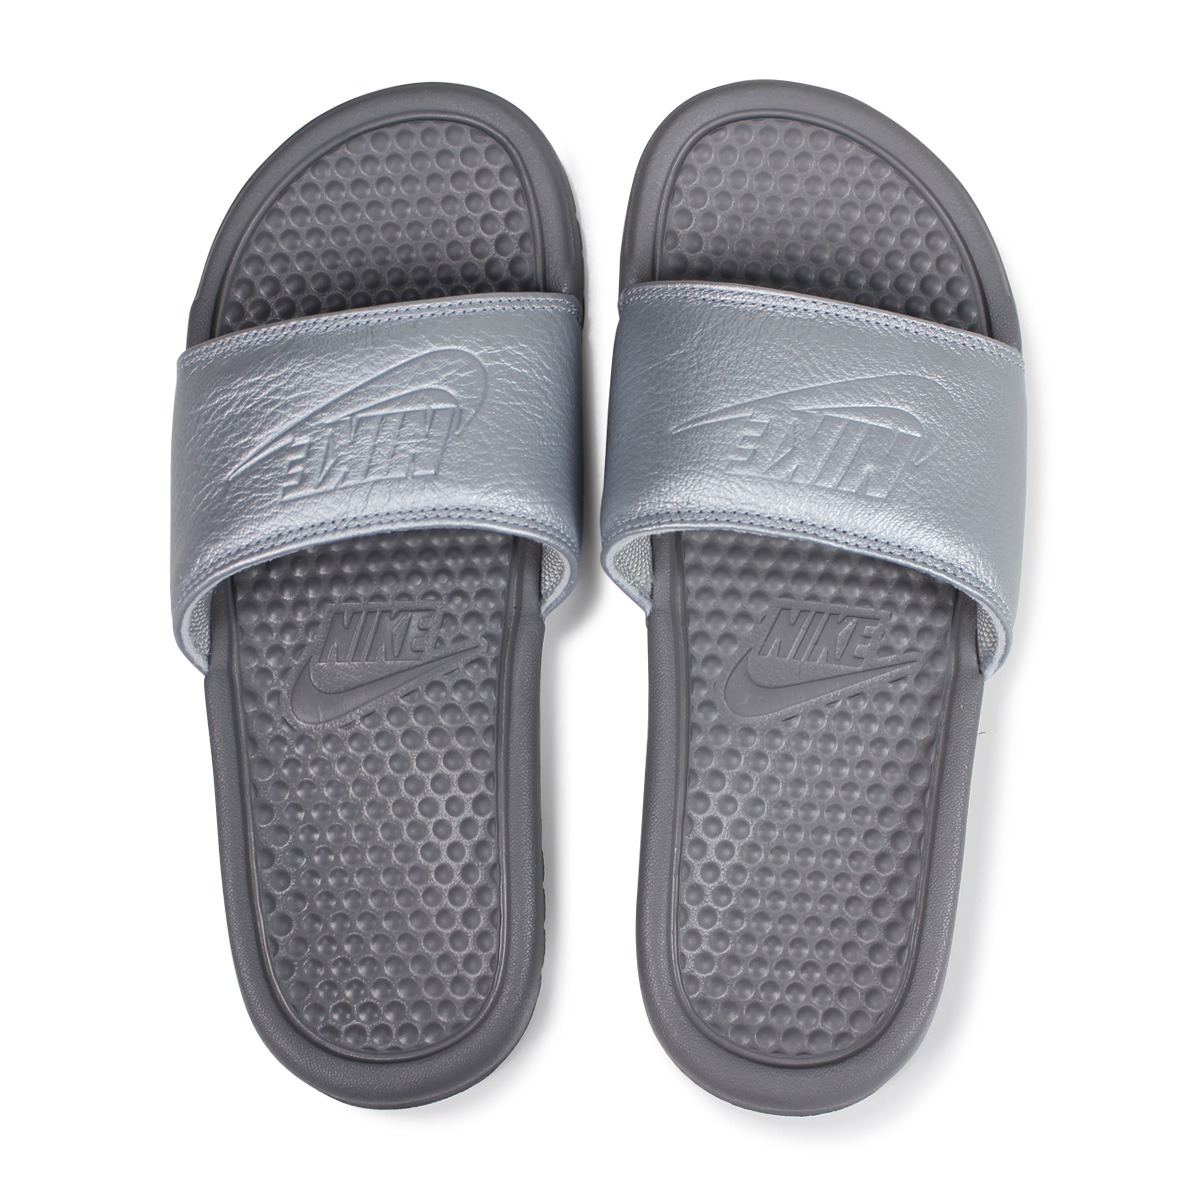 451b9a7b0 ... buy nike wmns benassi just do it bp nike sandals ao4642 001 silver load  planned 593f6